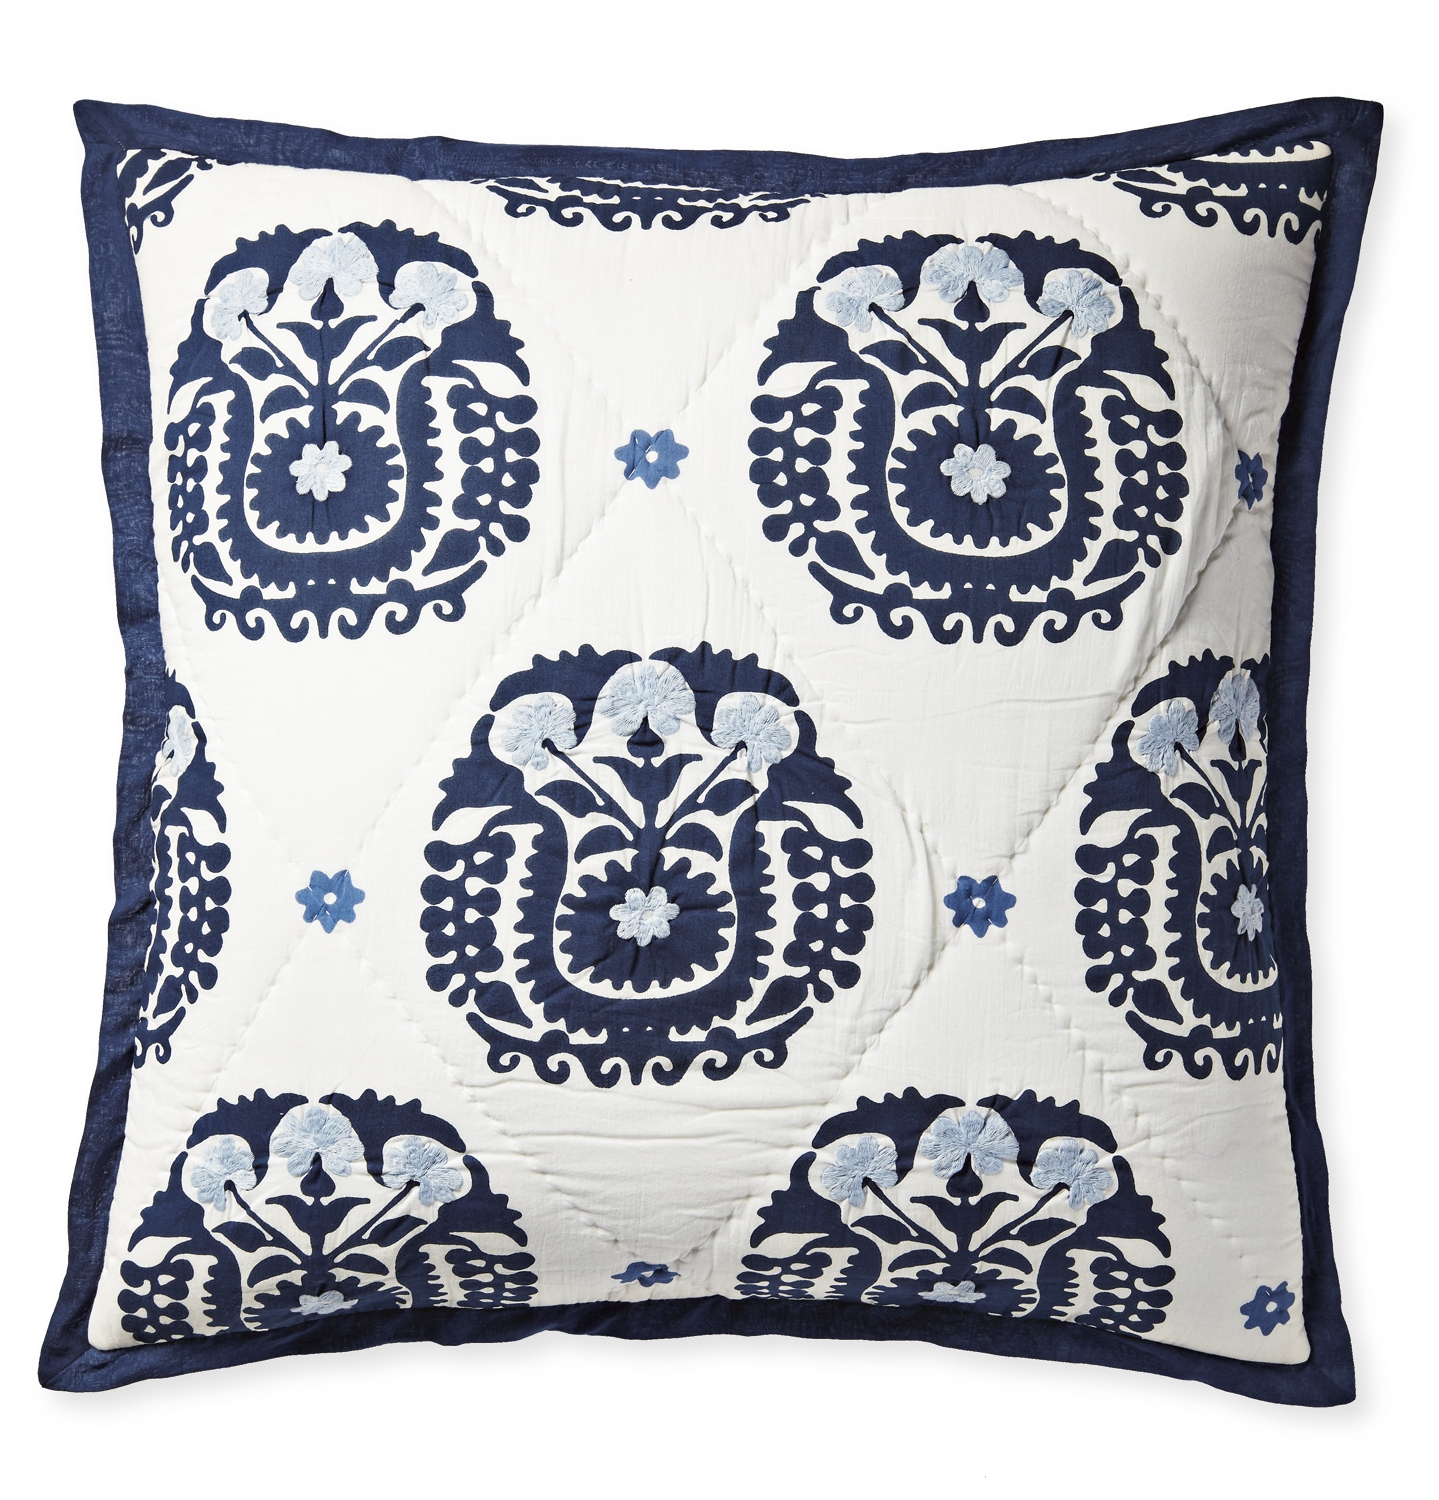 Blockprinted, embroidered and quilted bedding (Designed for Serena & Lily)